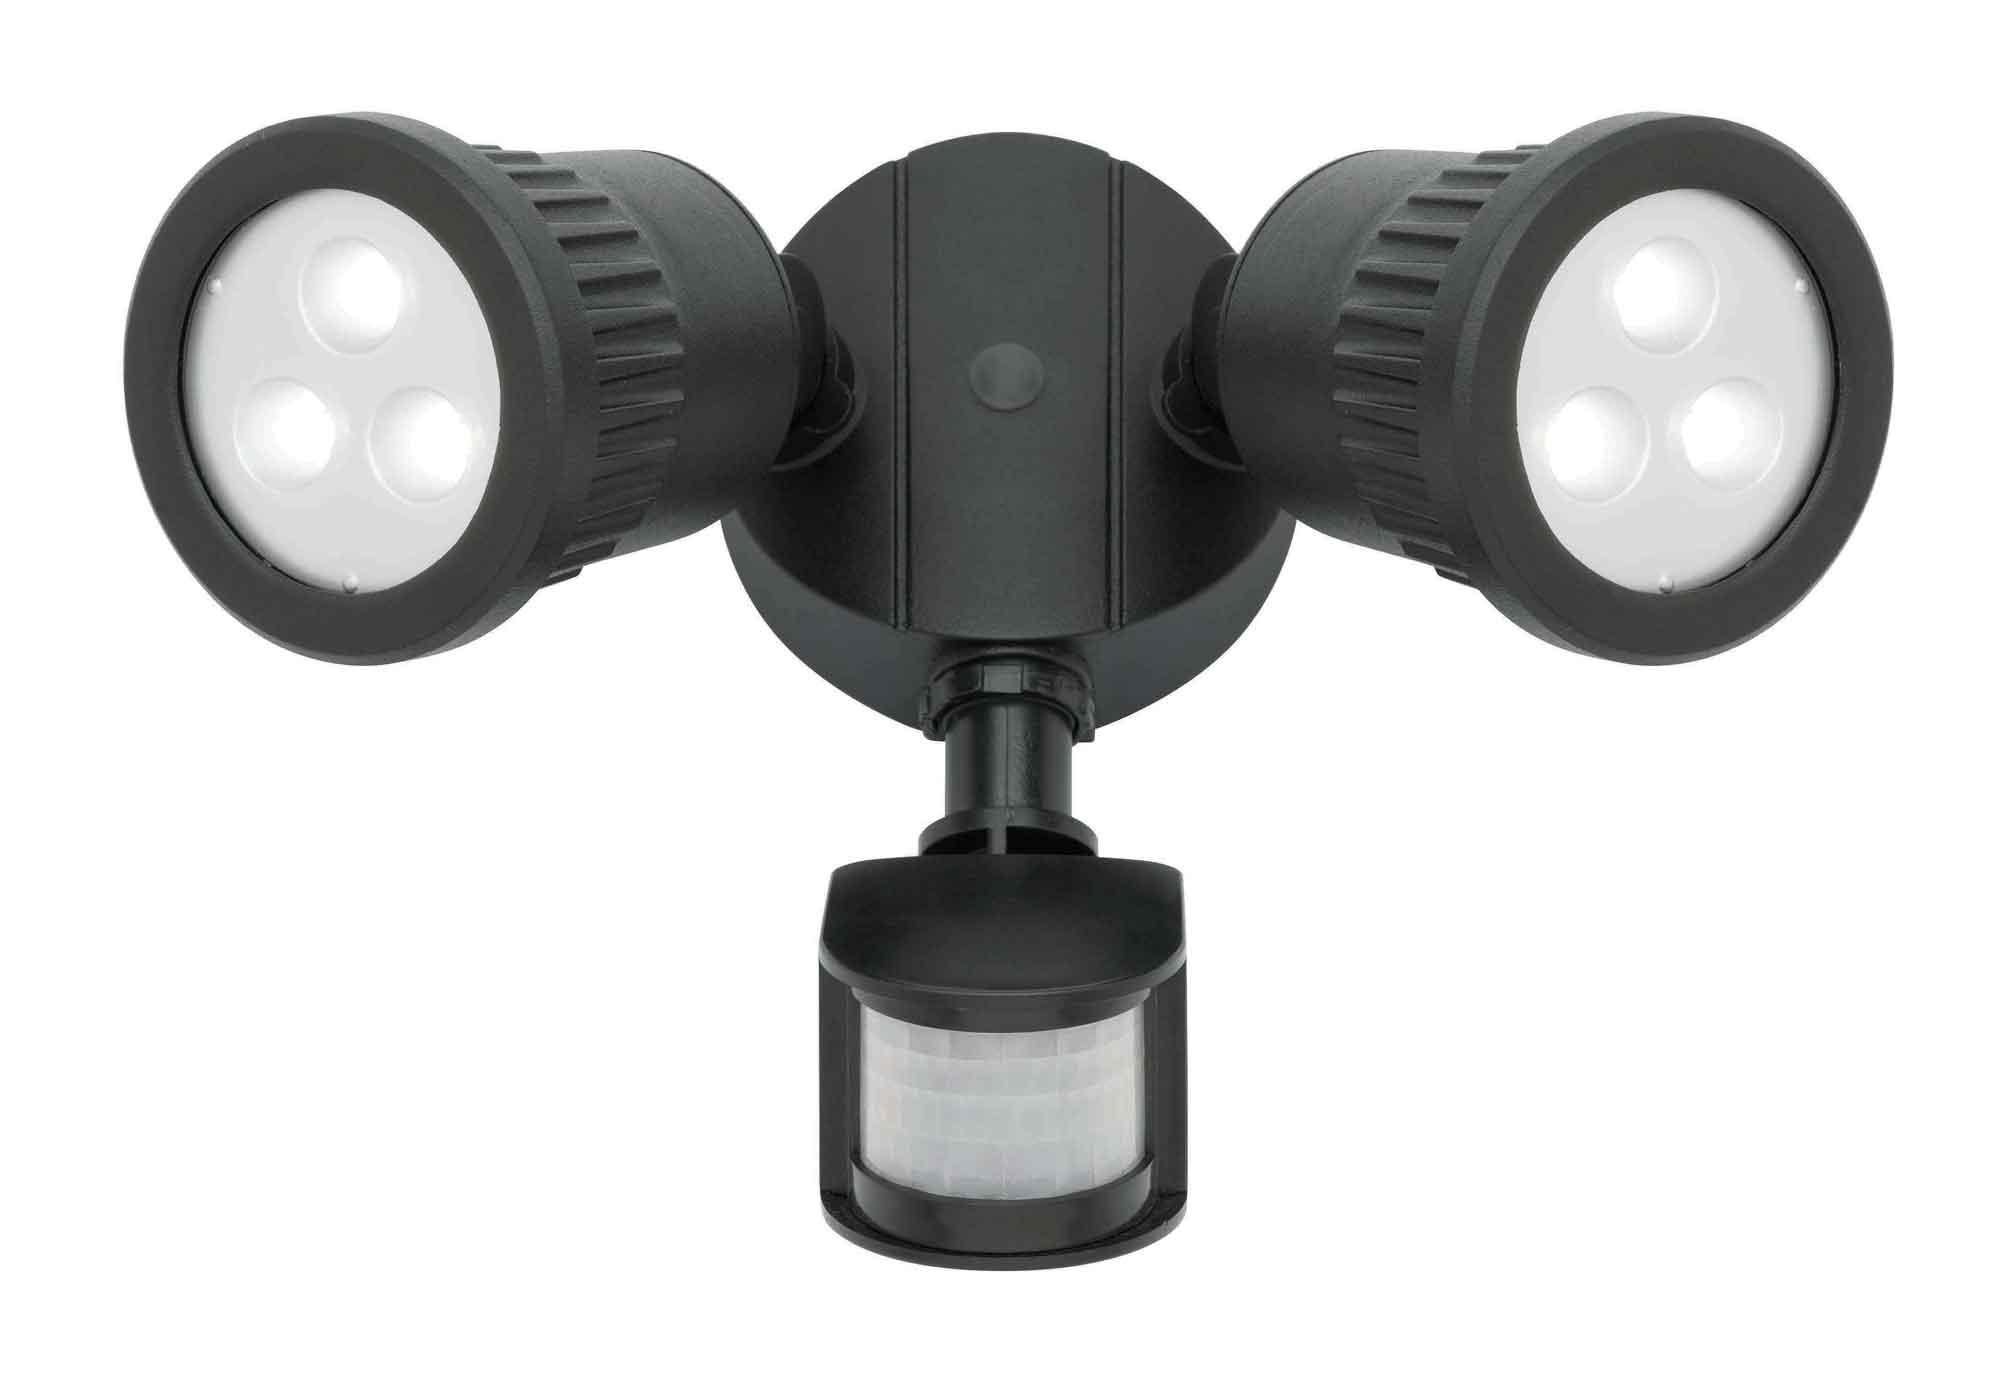 Outdoor Spot Lights Can Benefit Any Outdoor Lighting ...